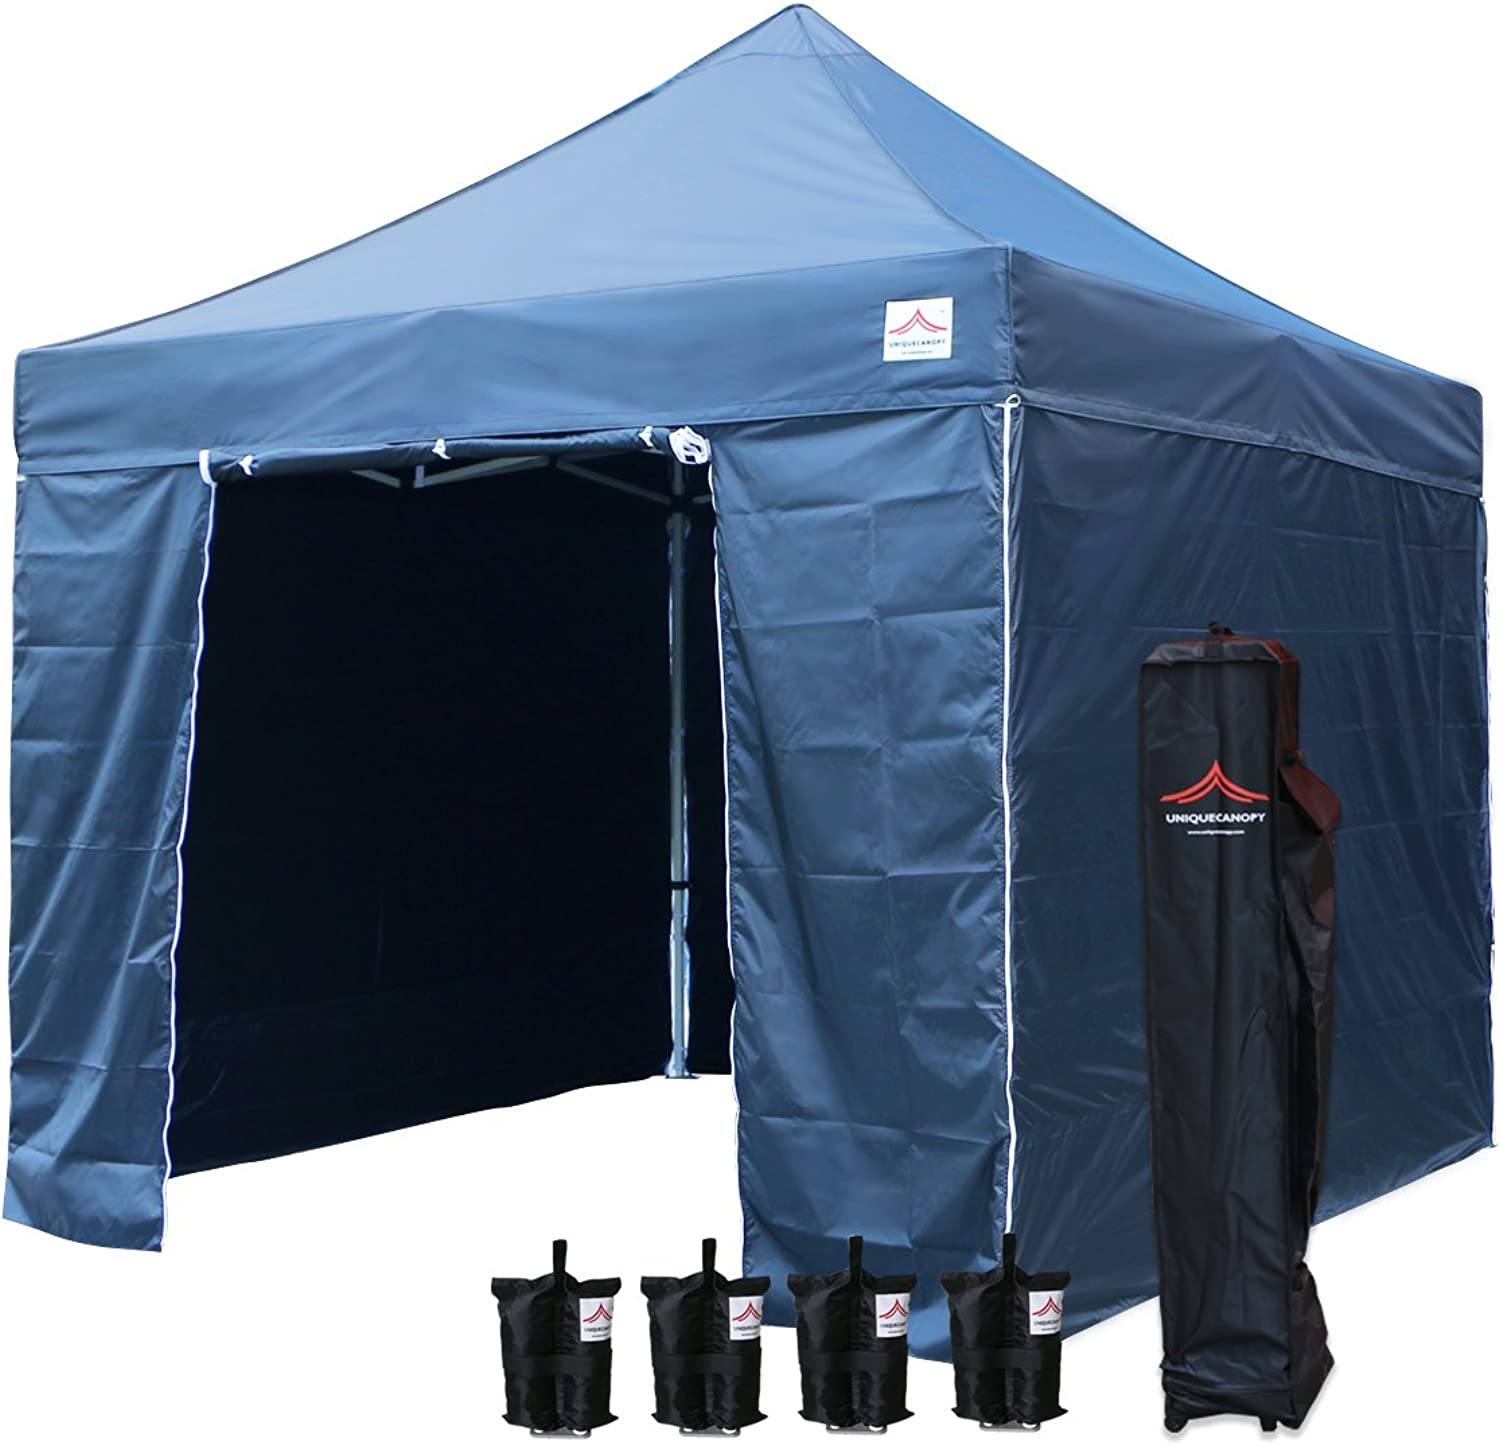 UNIQUECANOPY Enhanced 10x10 Ez Pop up Canopy Instant Tent Outdoor Party Portable Folded Commercial shelter, with 4 x Side Walls, Wheeled Carrying Bag and Bonus 4 x Sand Bags Navy blueee